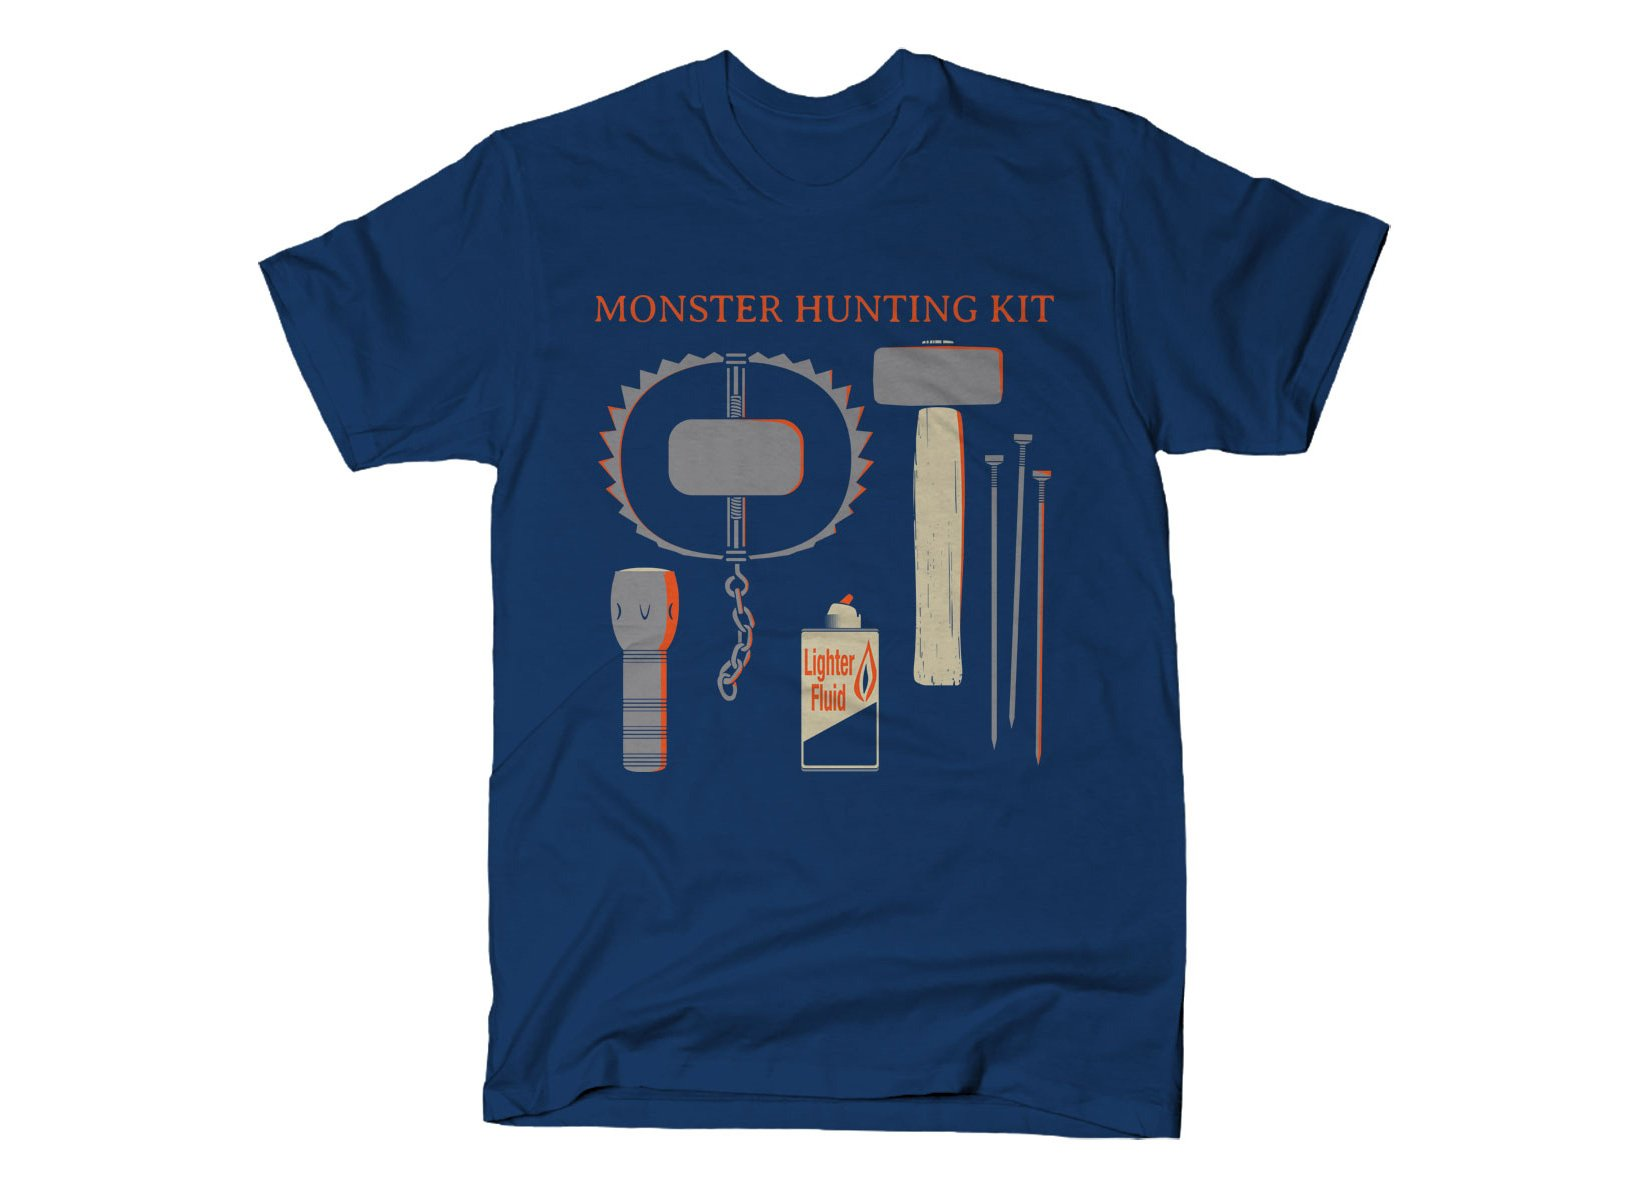 Monster Hunting Kit on Mens T-Shirt